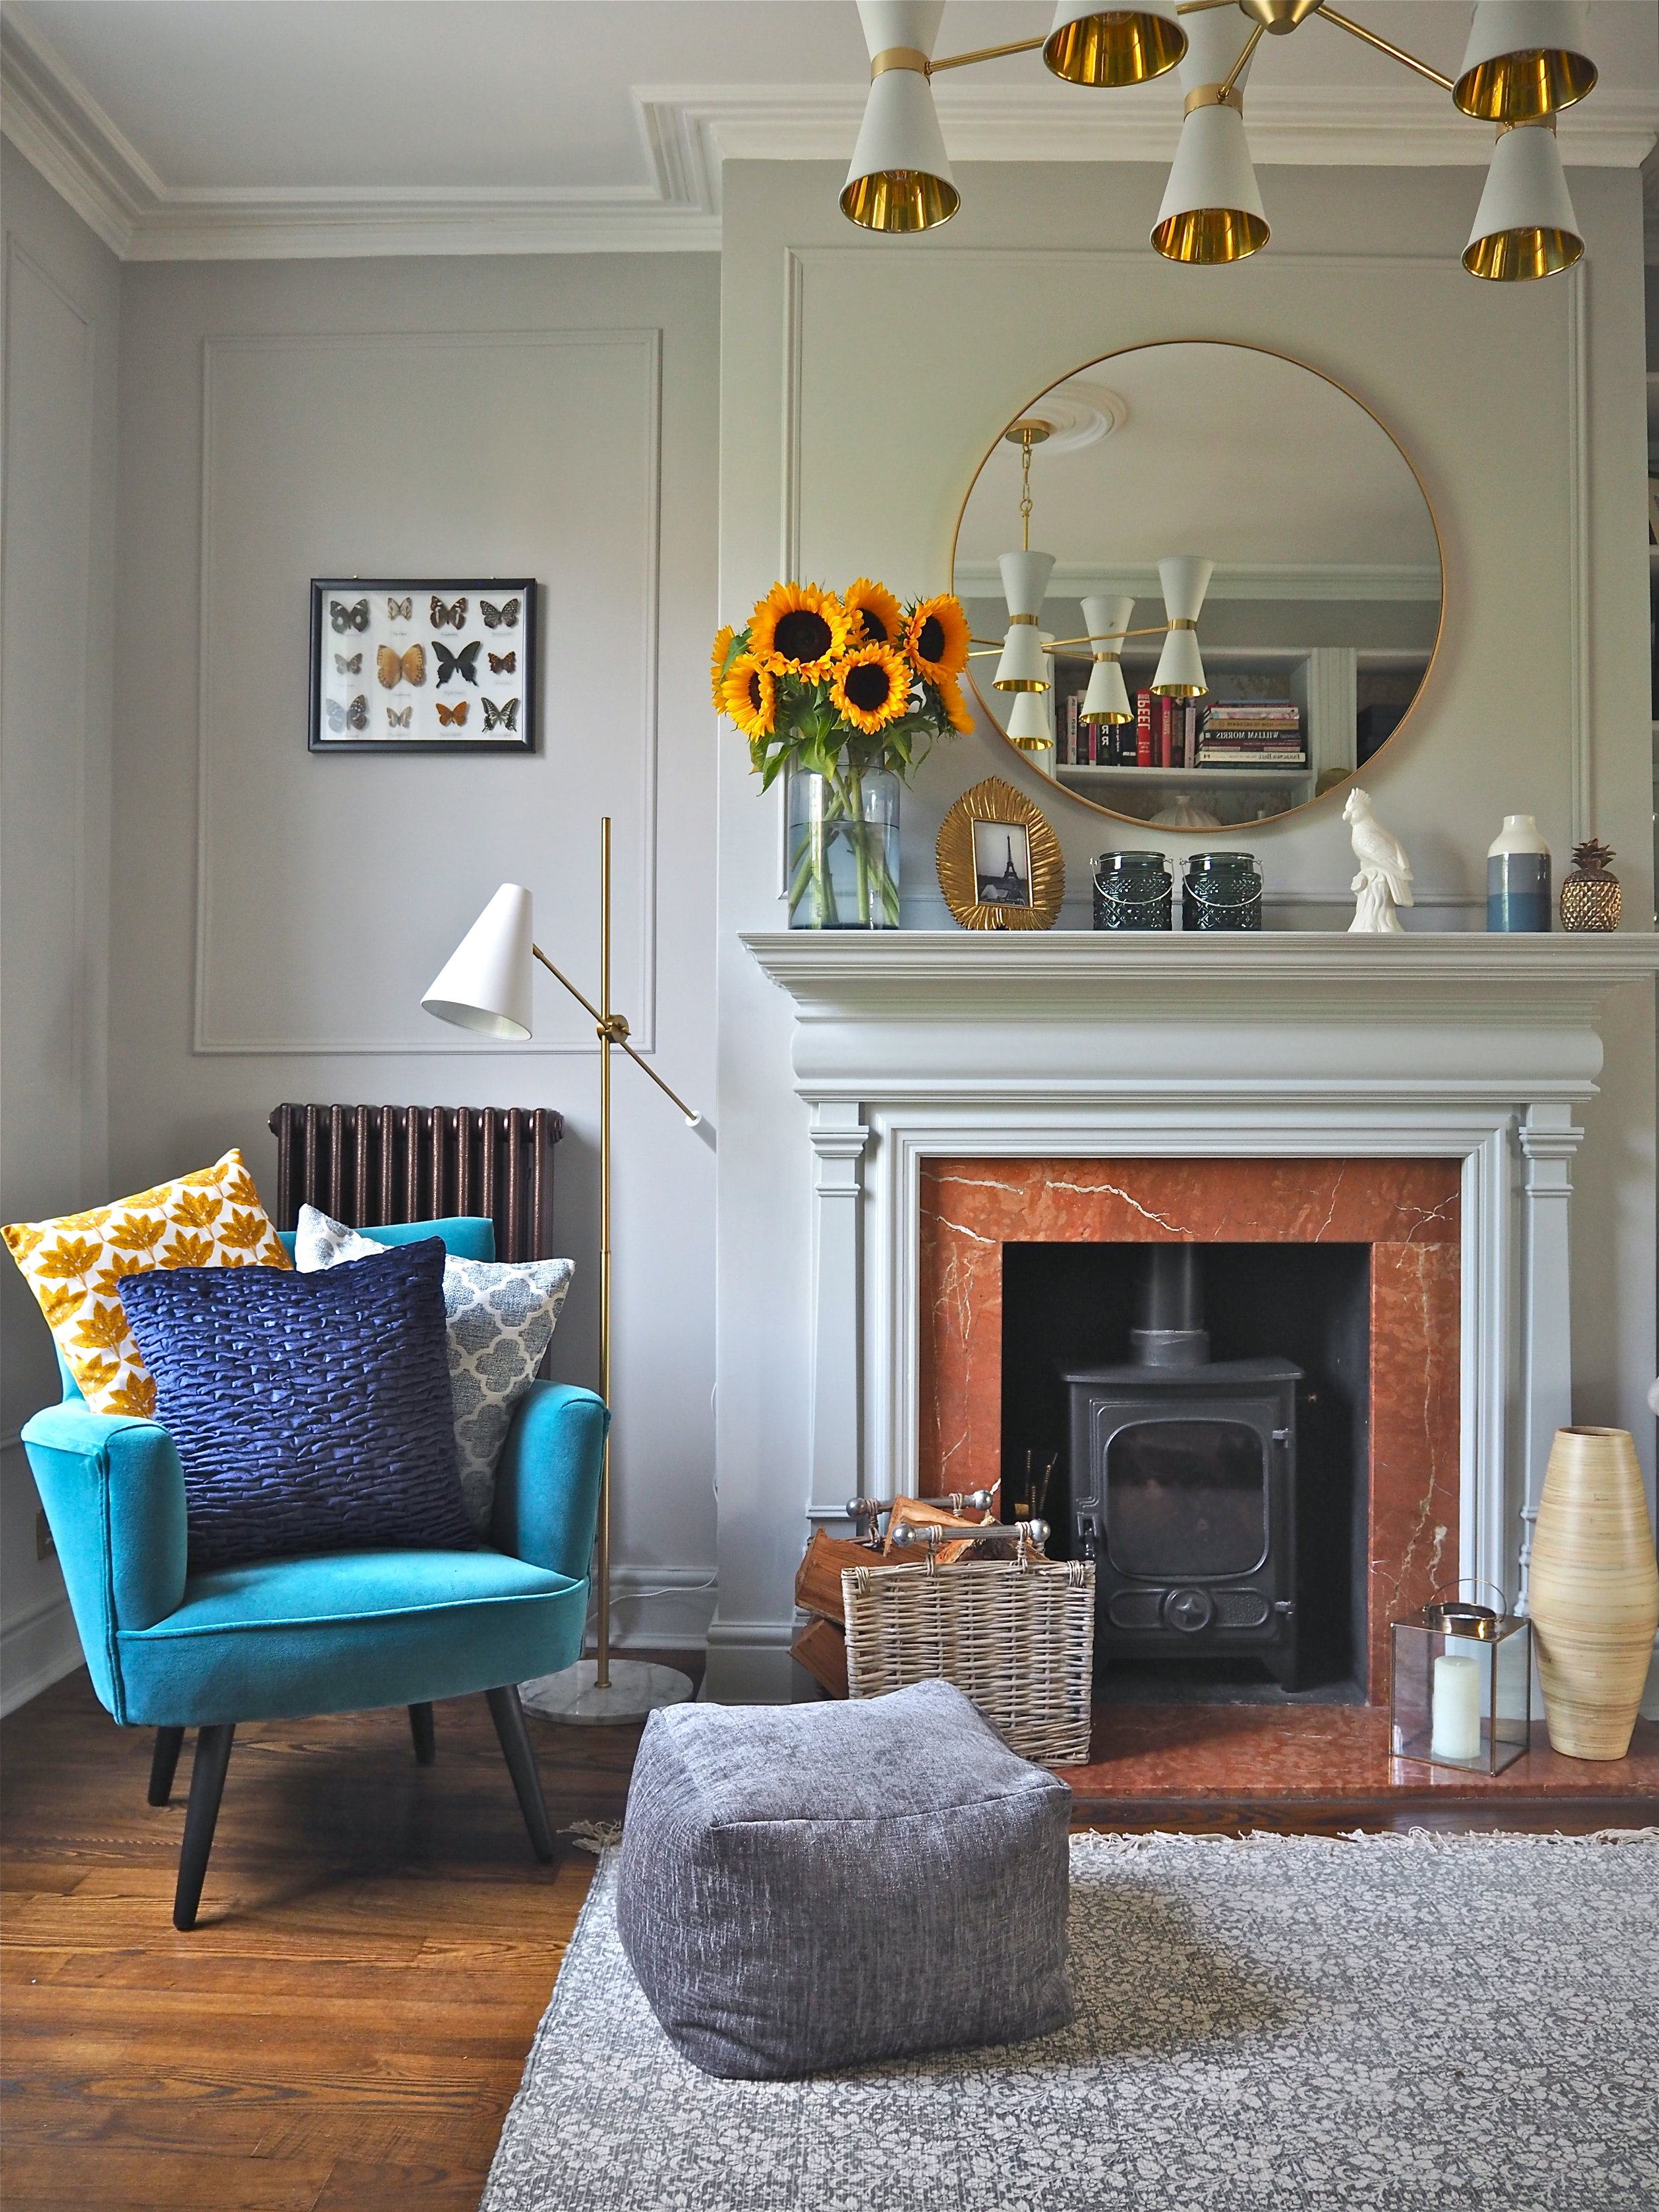 All the cushions, the pouf, plus decorative items pictured are by B&Q.